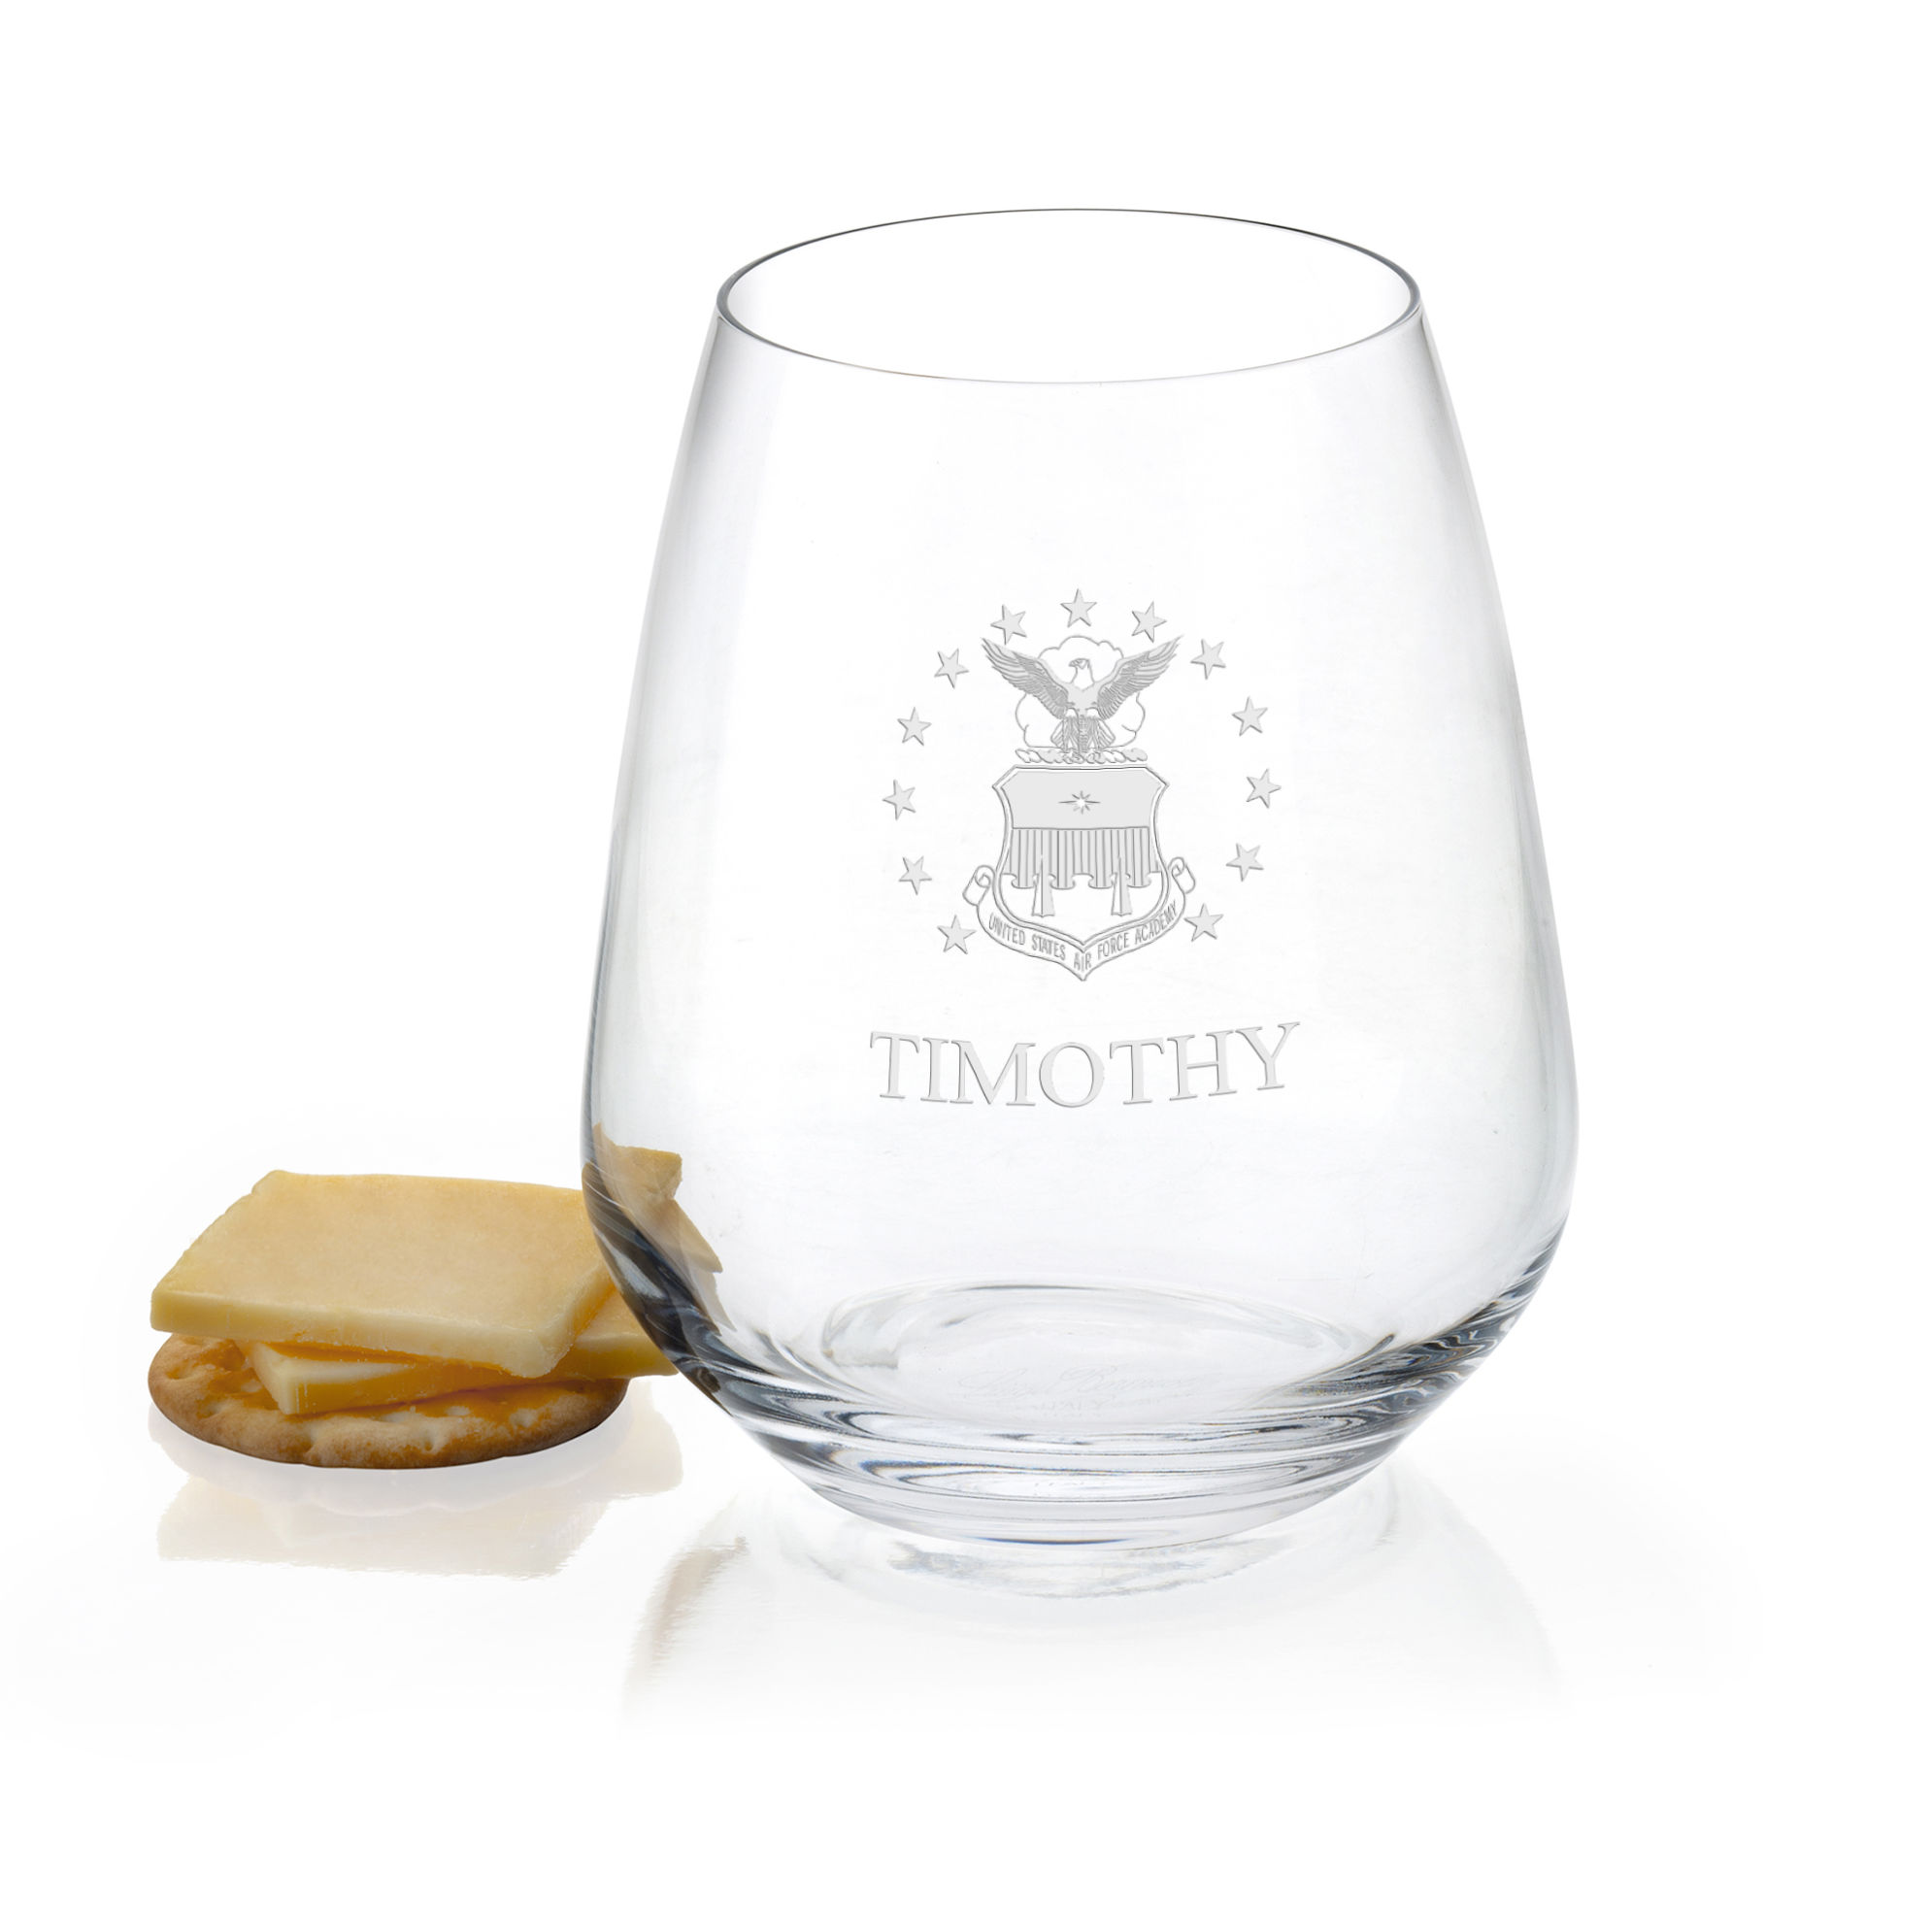 US Air Force Academy Stemless Wine Glasses - Set of 2